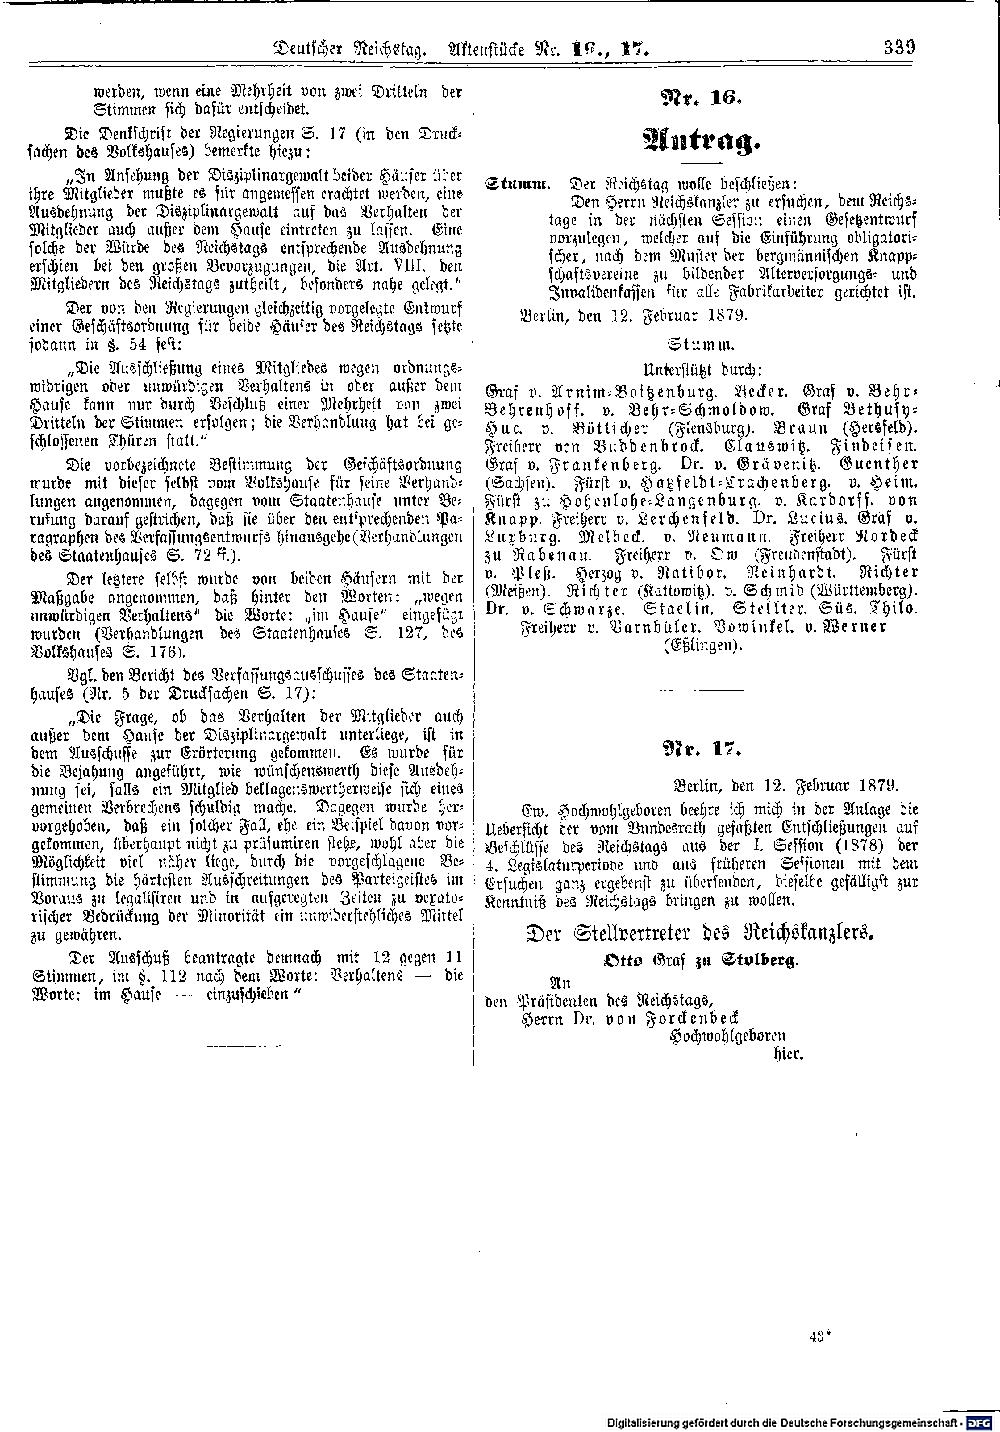 Scan of page 339